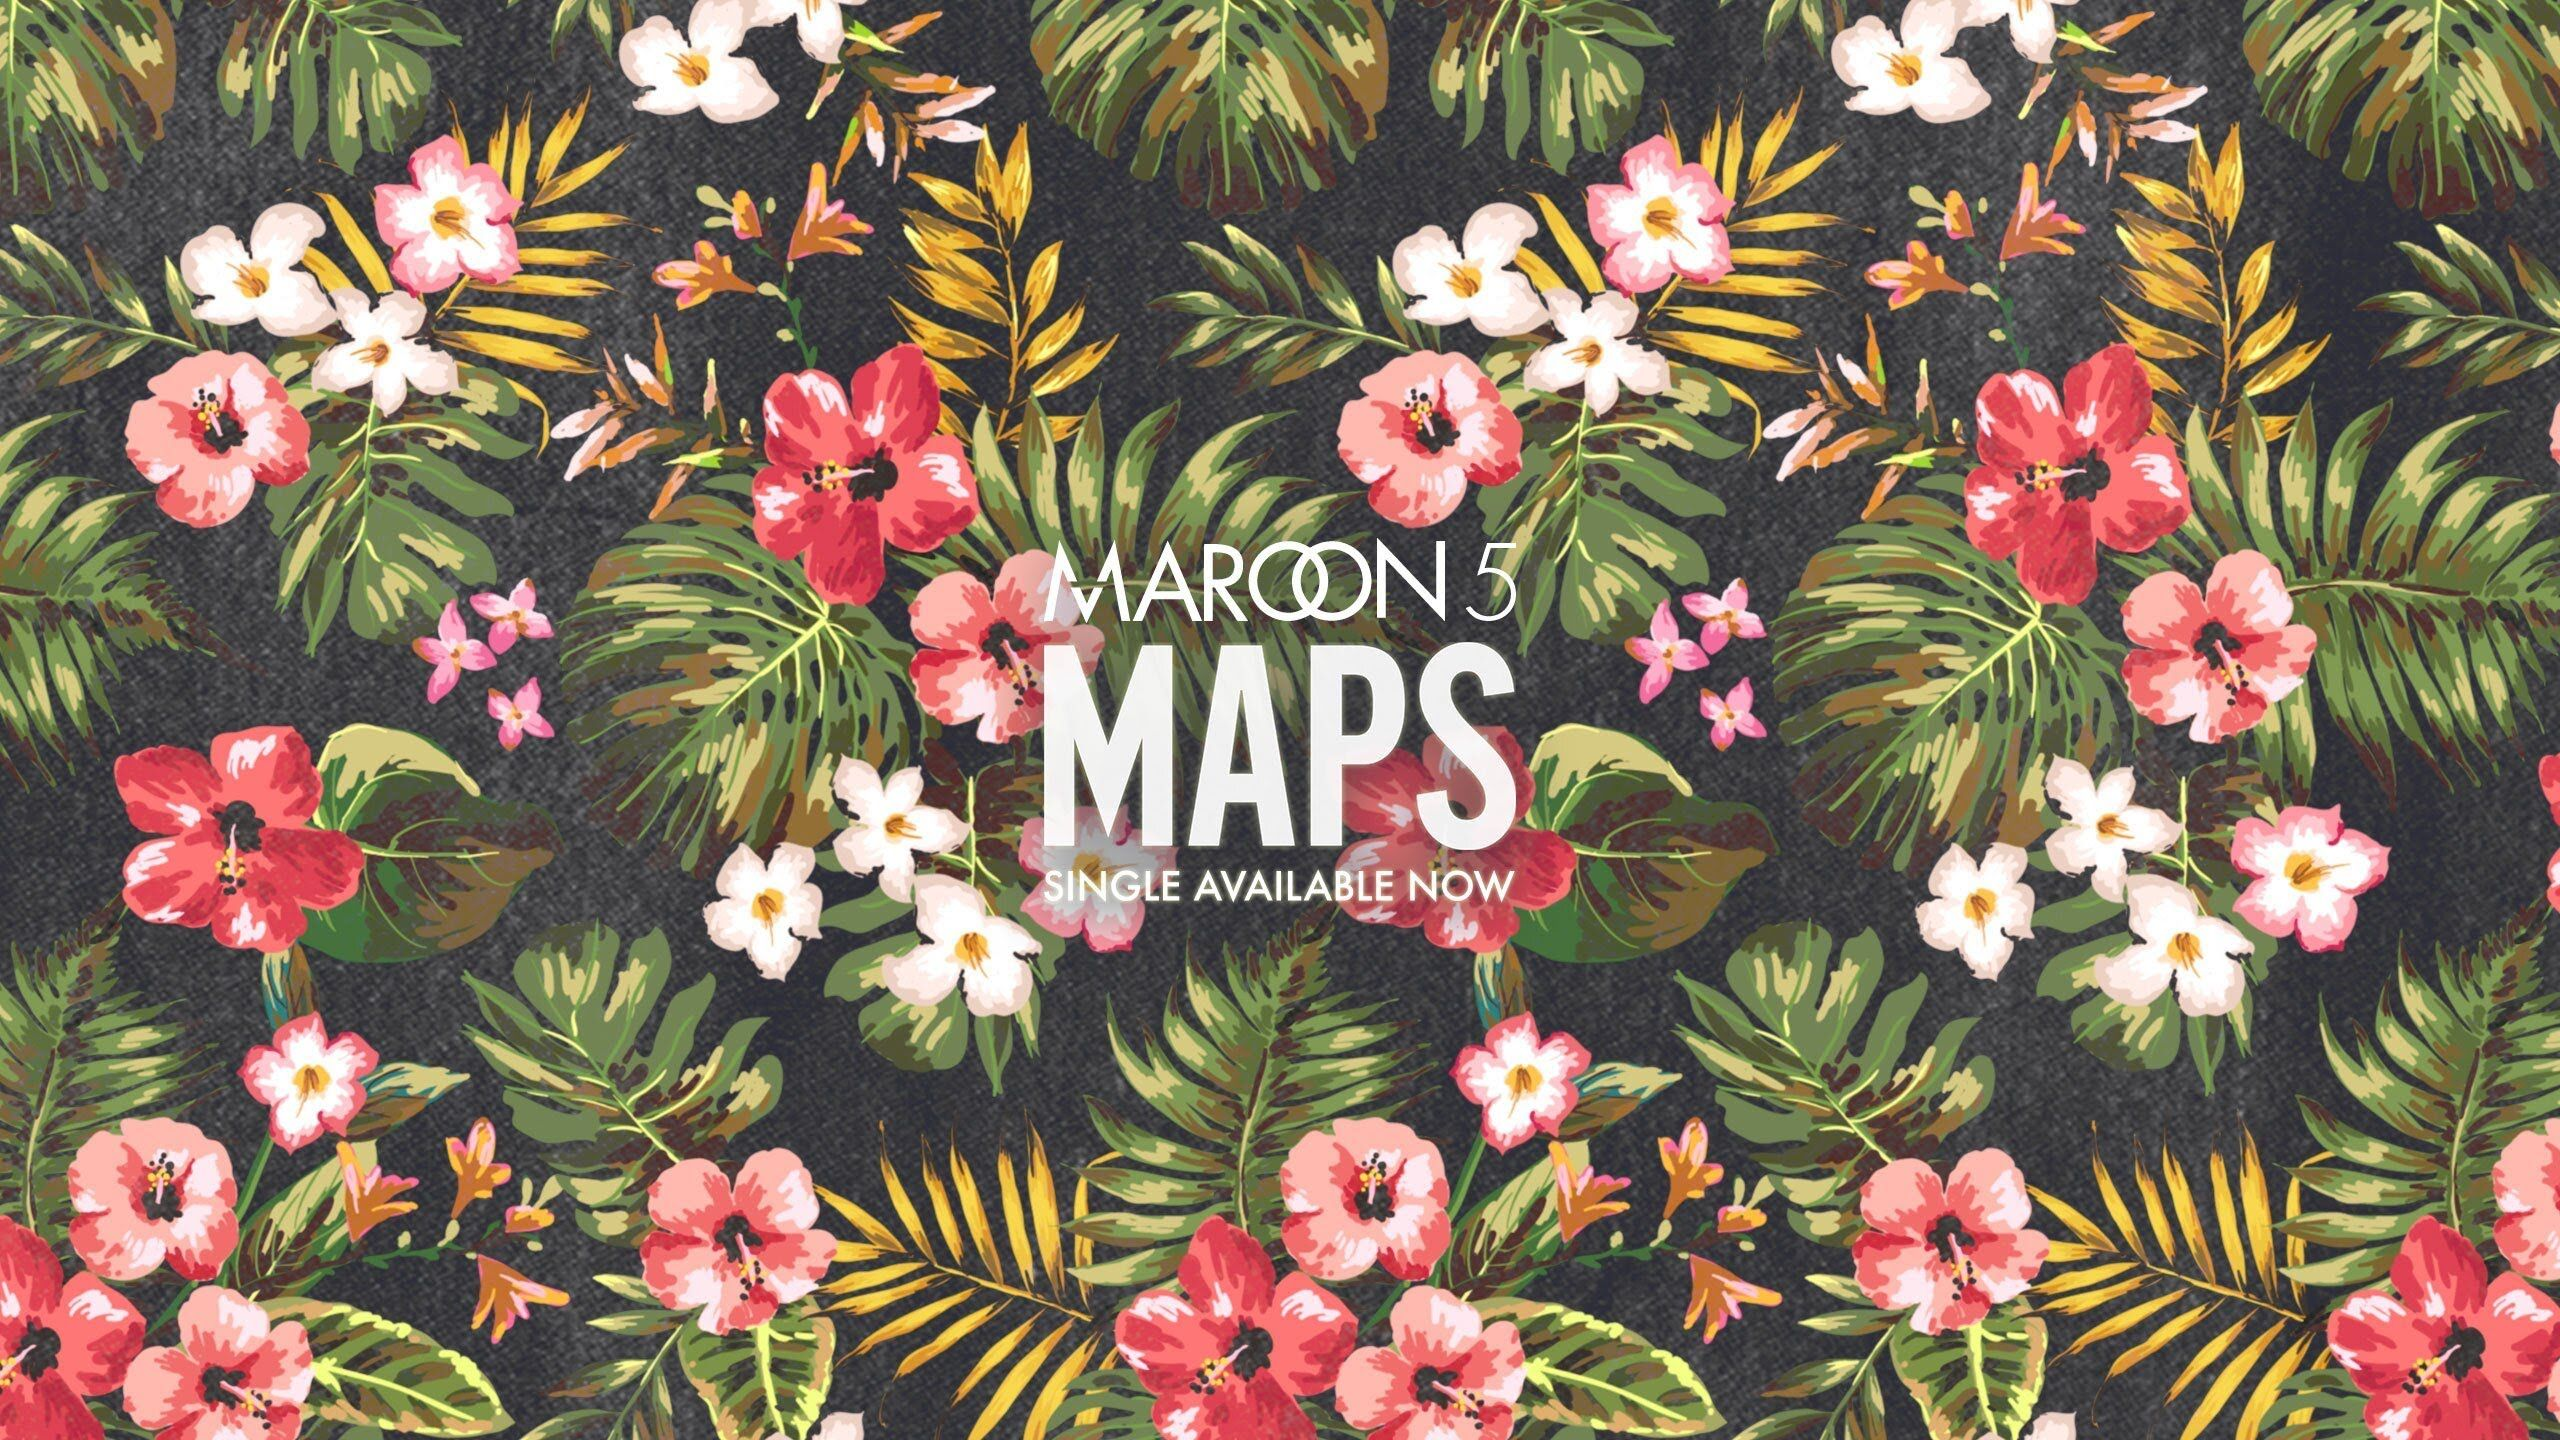 Free Maroon Wallpaper 1063 1080 Maroon 5 Wallpaper 42 Wallpapers Adorable Wallpapers Maps Maroon 5 Maroon 5 Wallpaper